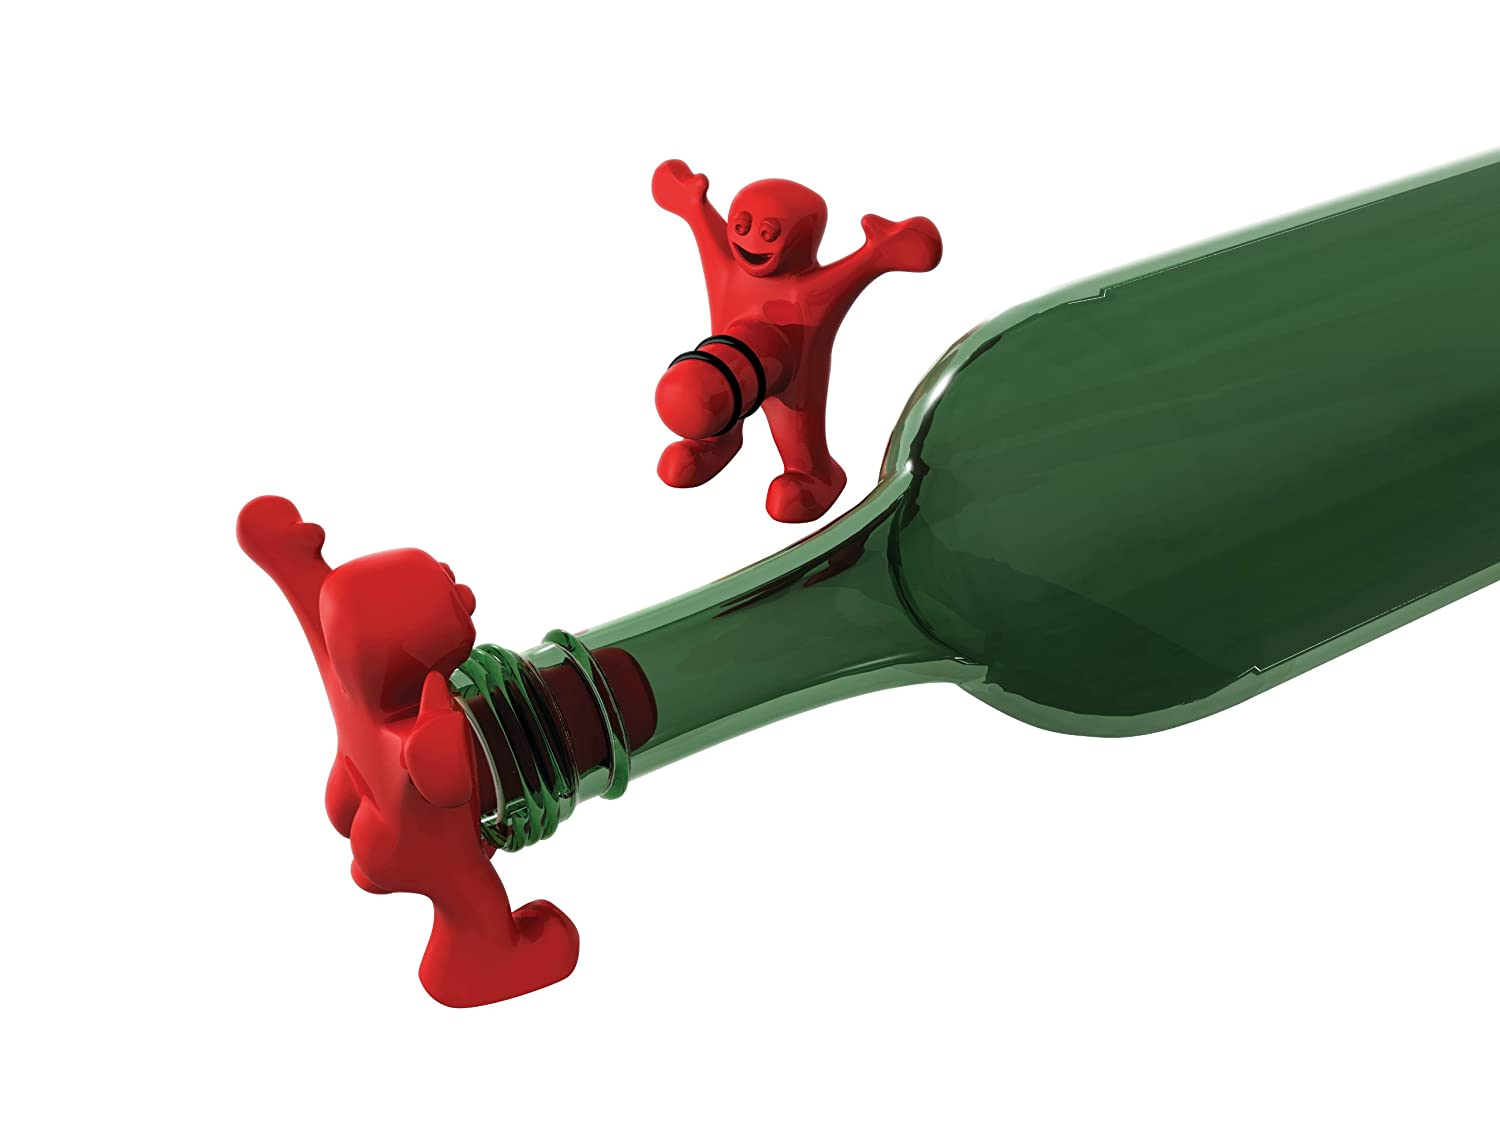 12 most creative bottle stoppers 1 design per day